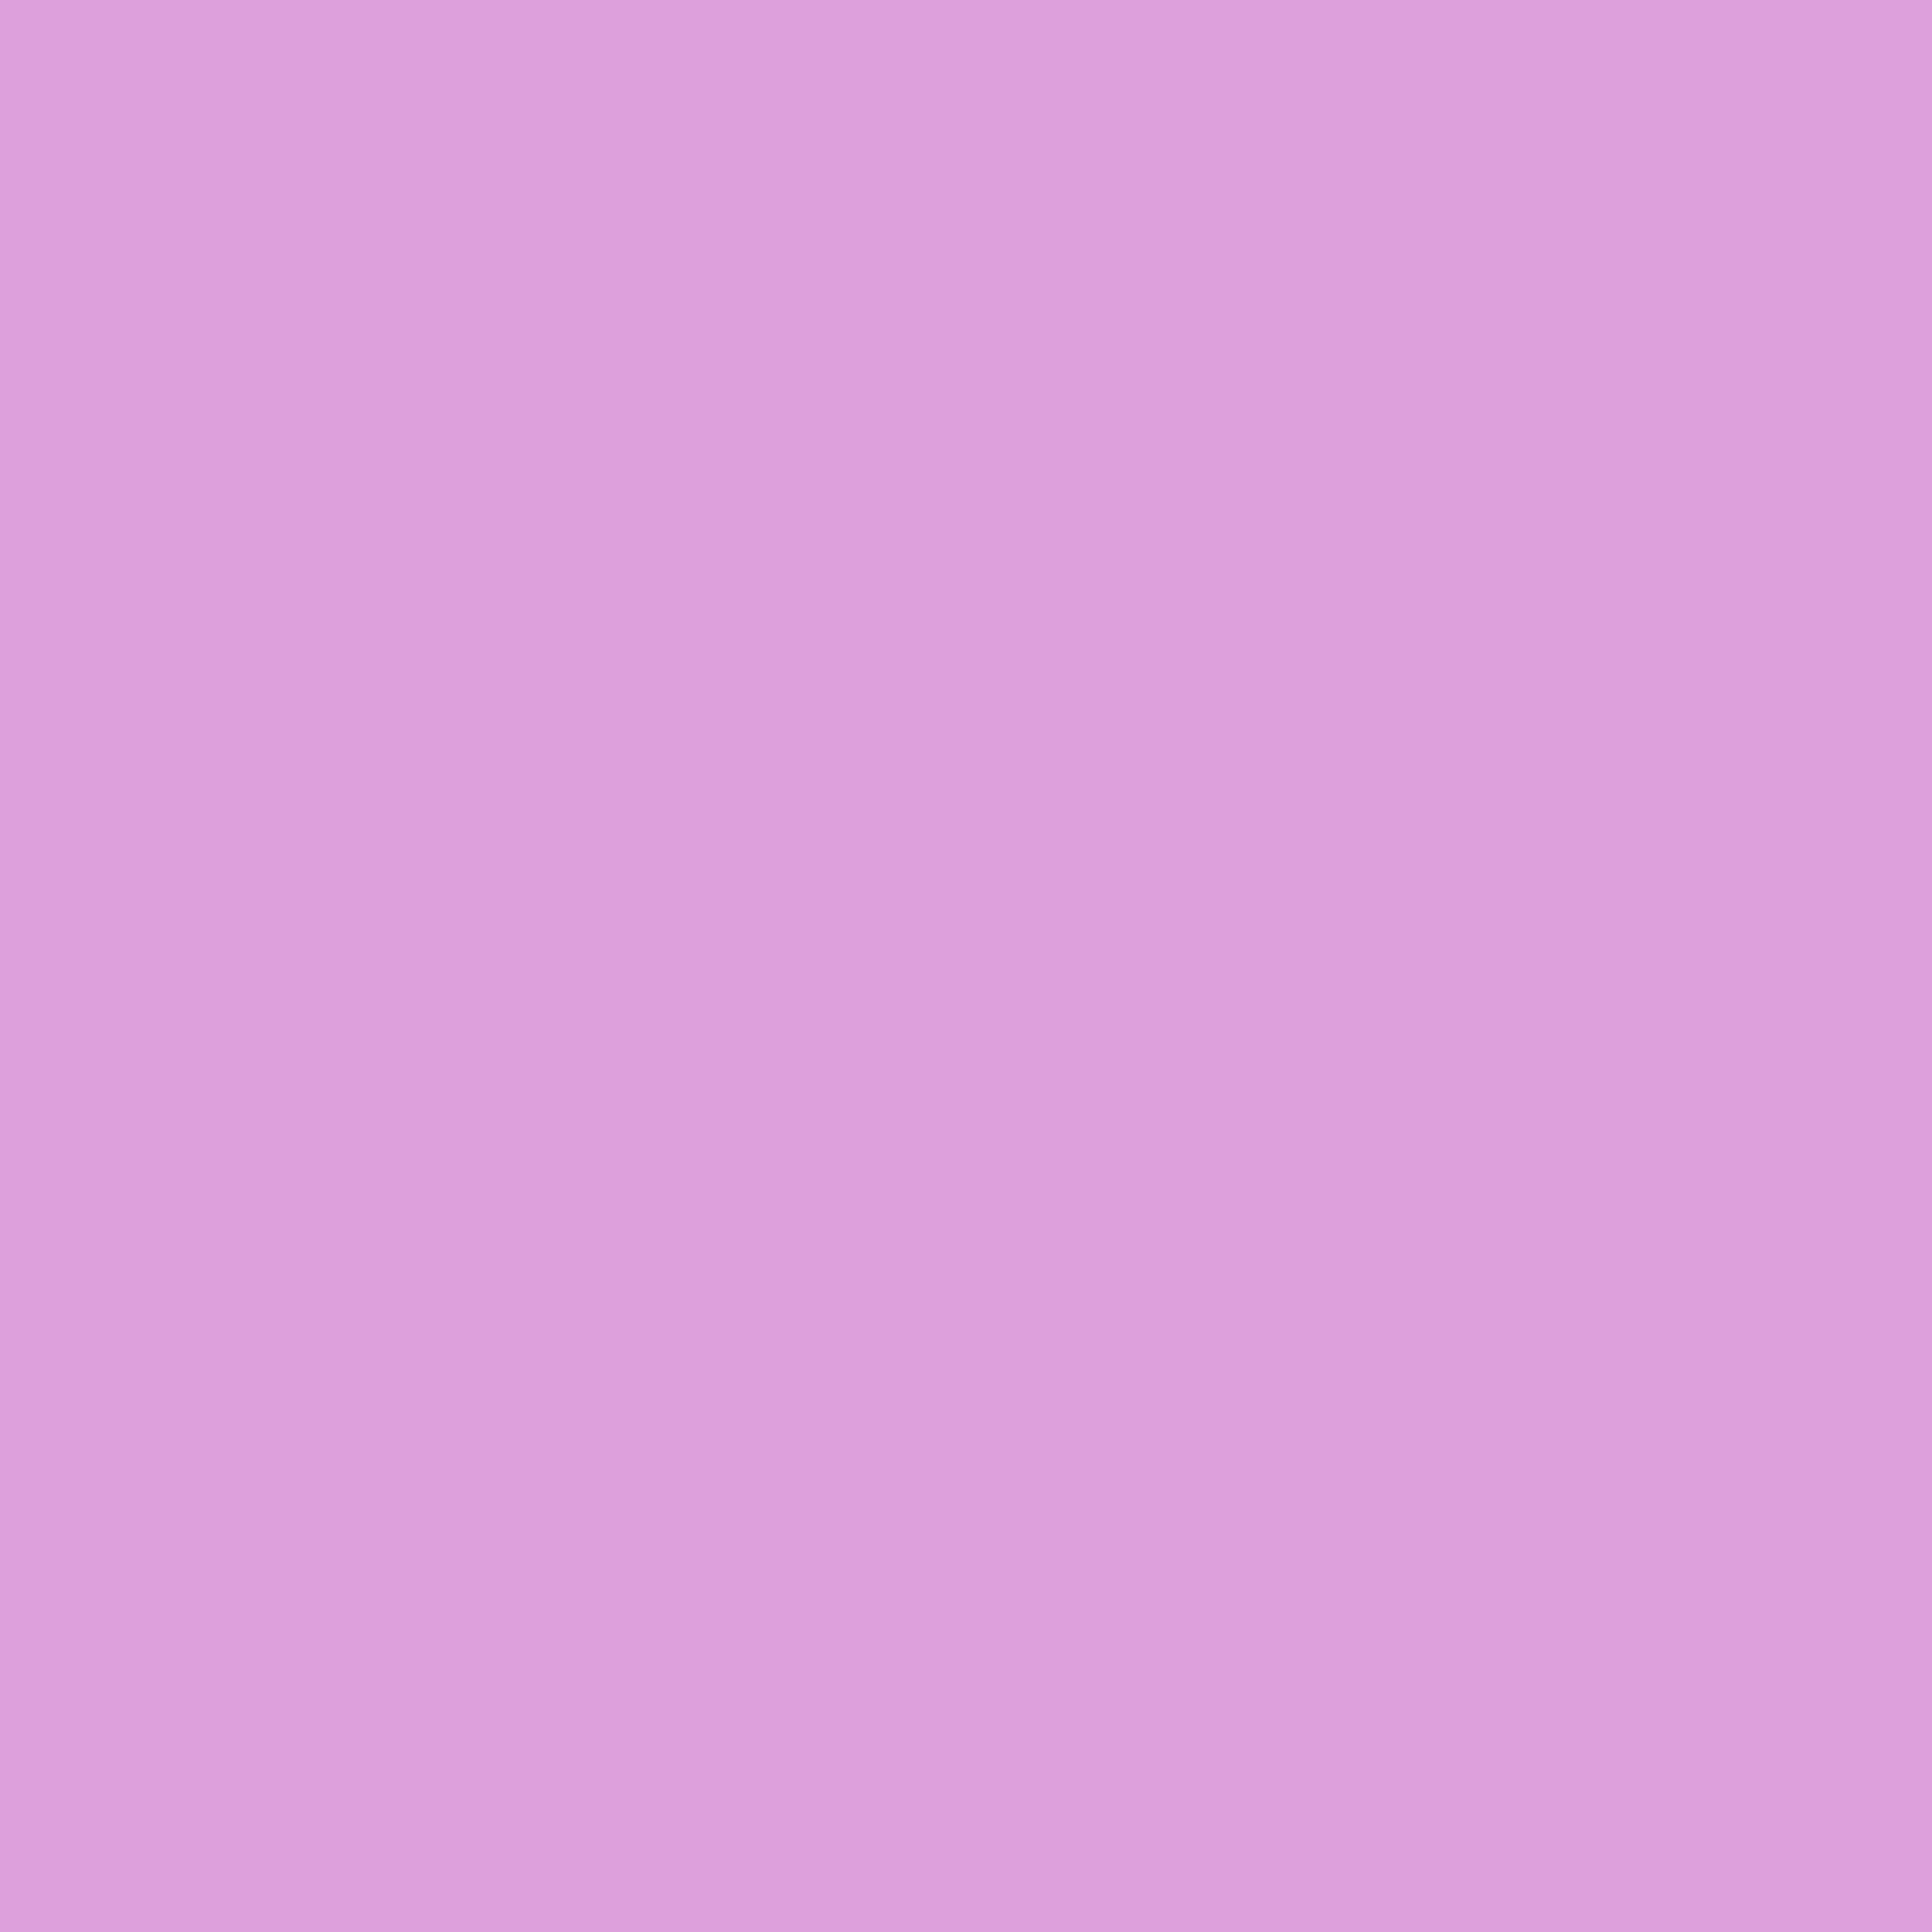 2732x2732 Pale Plum Solid Color Background